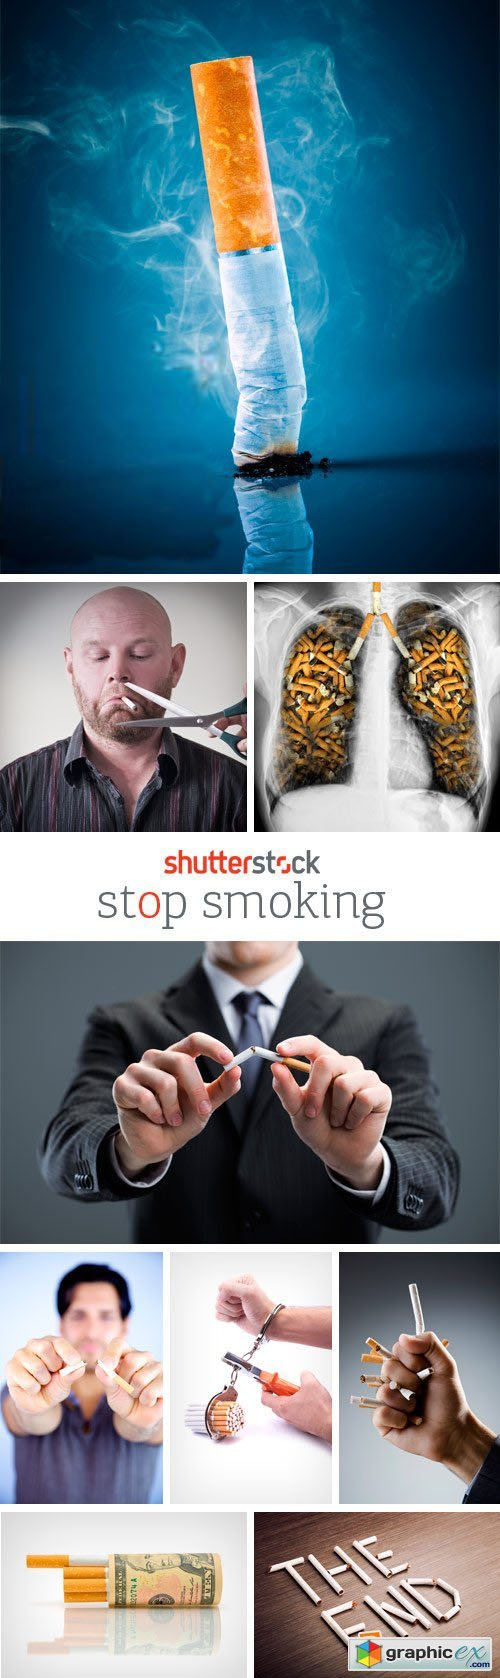 Amazing SS - Stop Smoking, 25xJPG